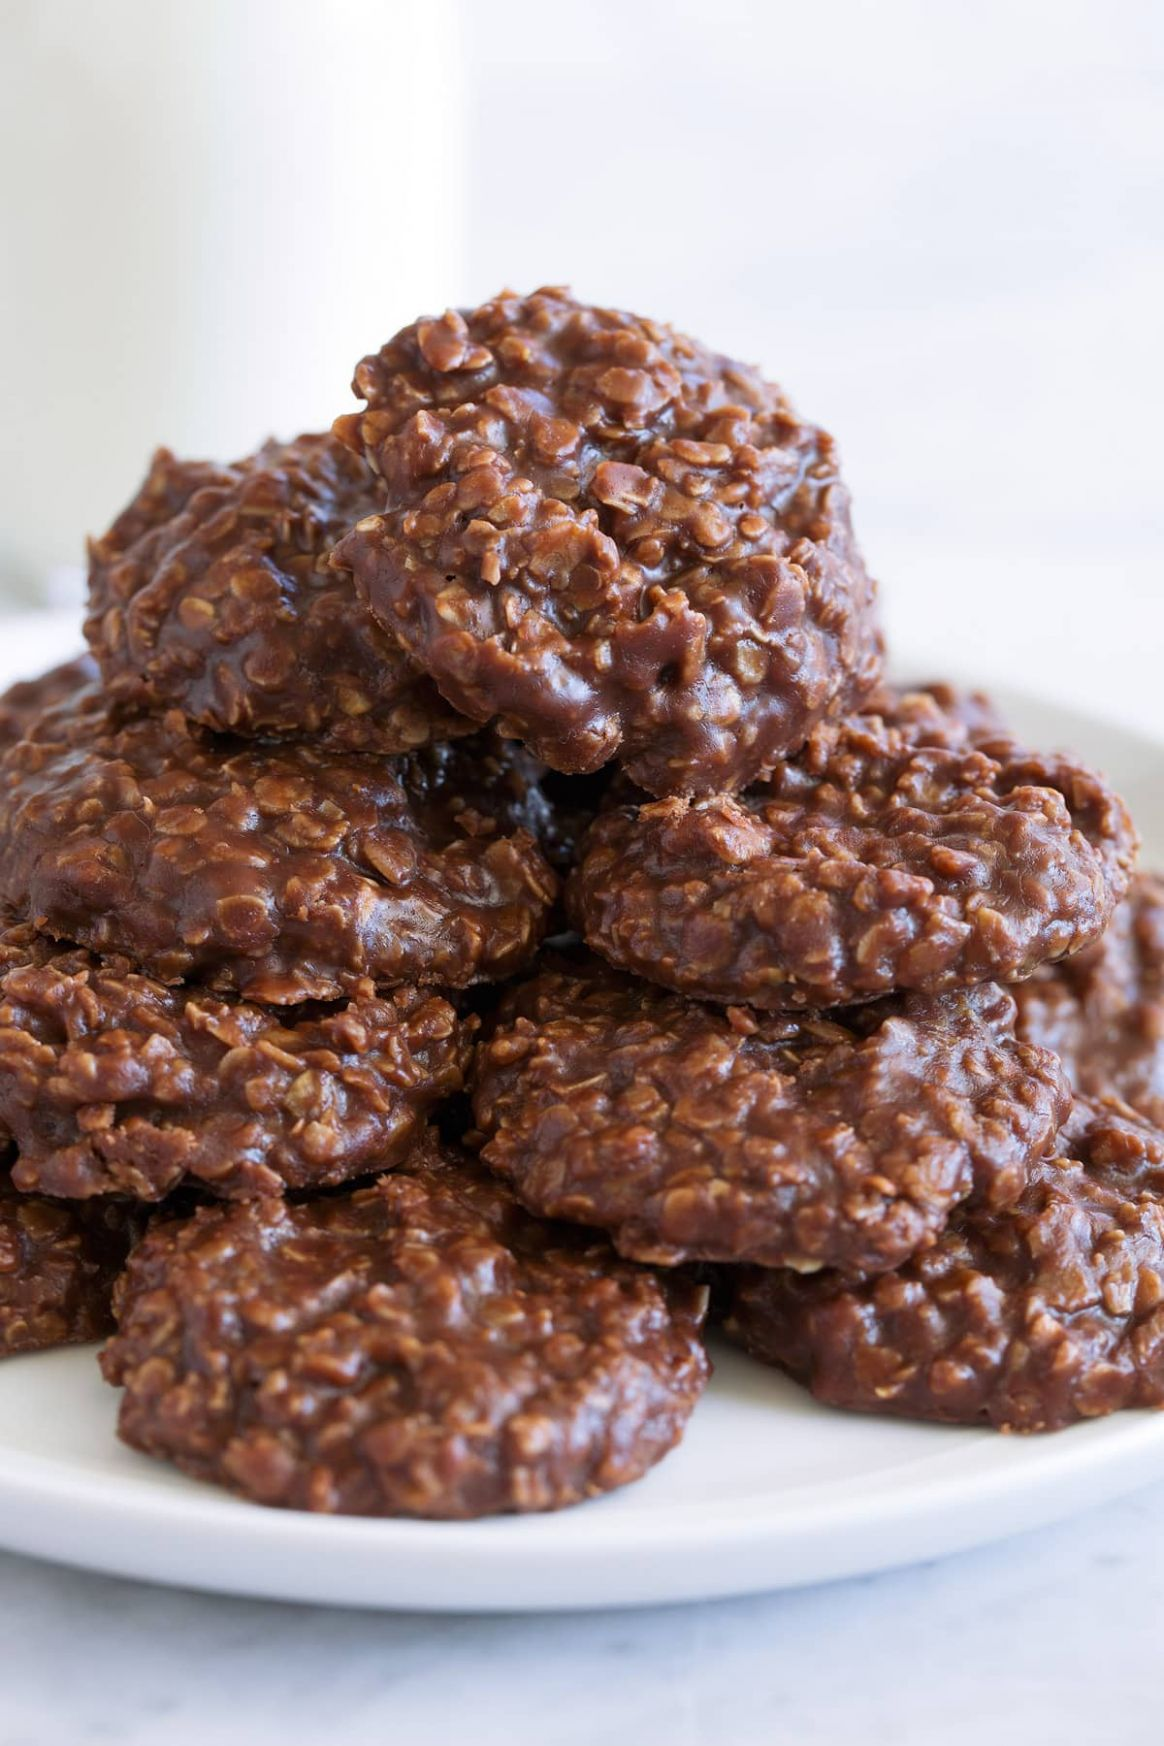 No Bake Cookies Perfect Every Time! - Cooking Classy - Recipe Chocolate Oatmeal No Bake Cookies